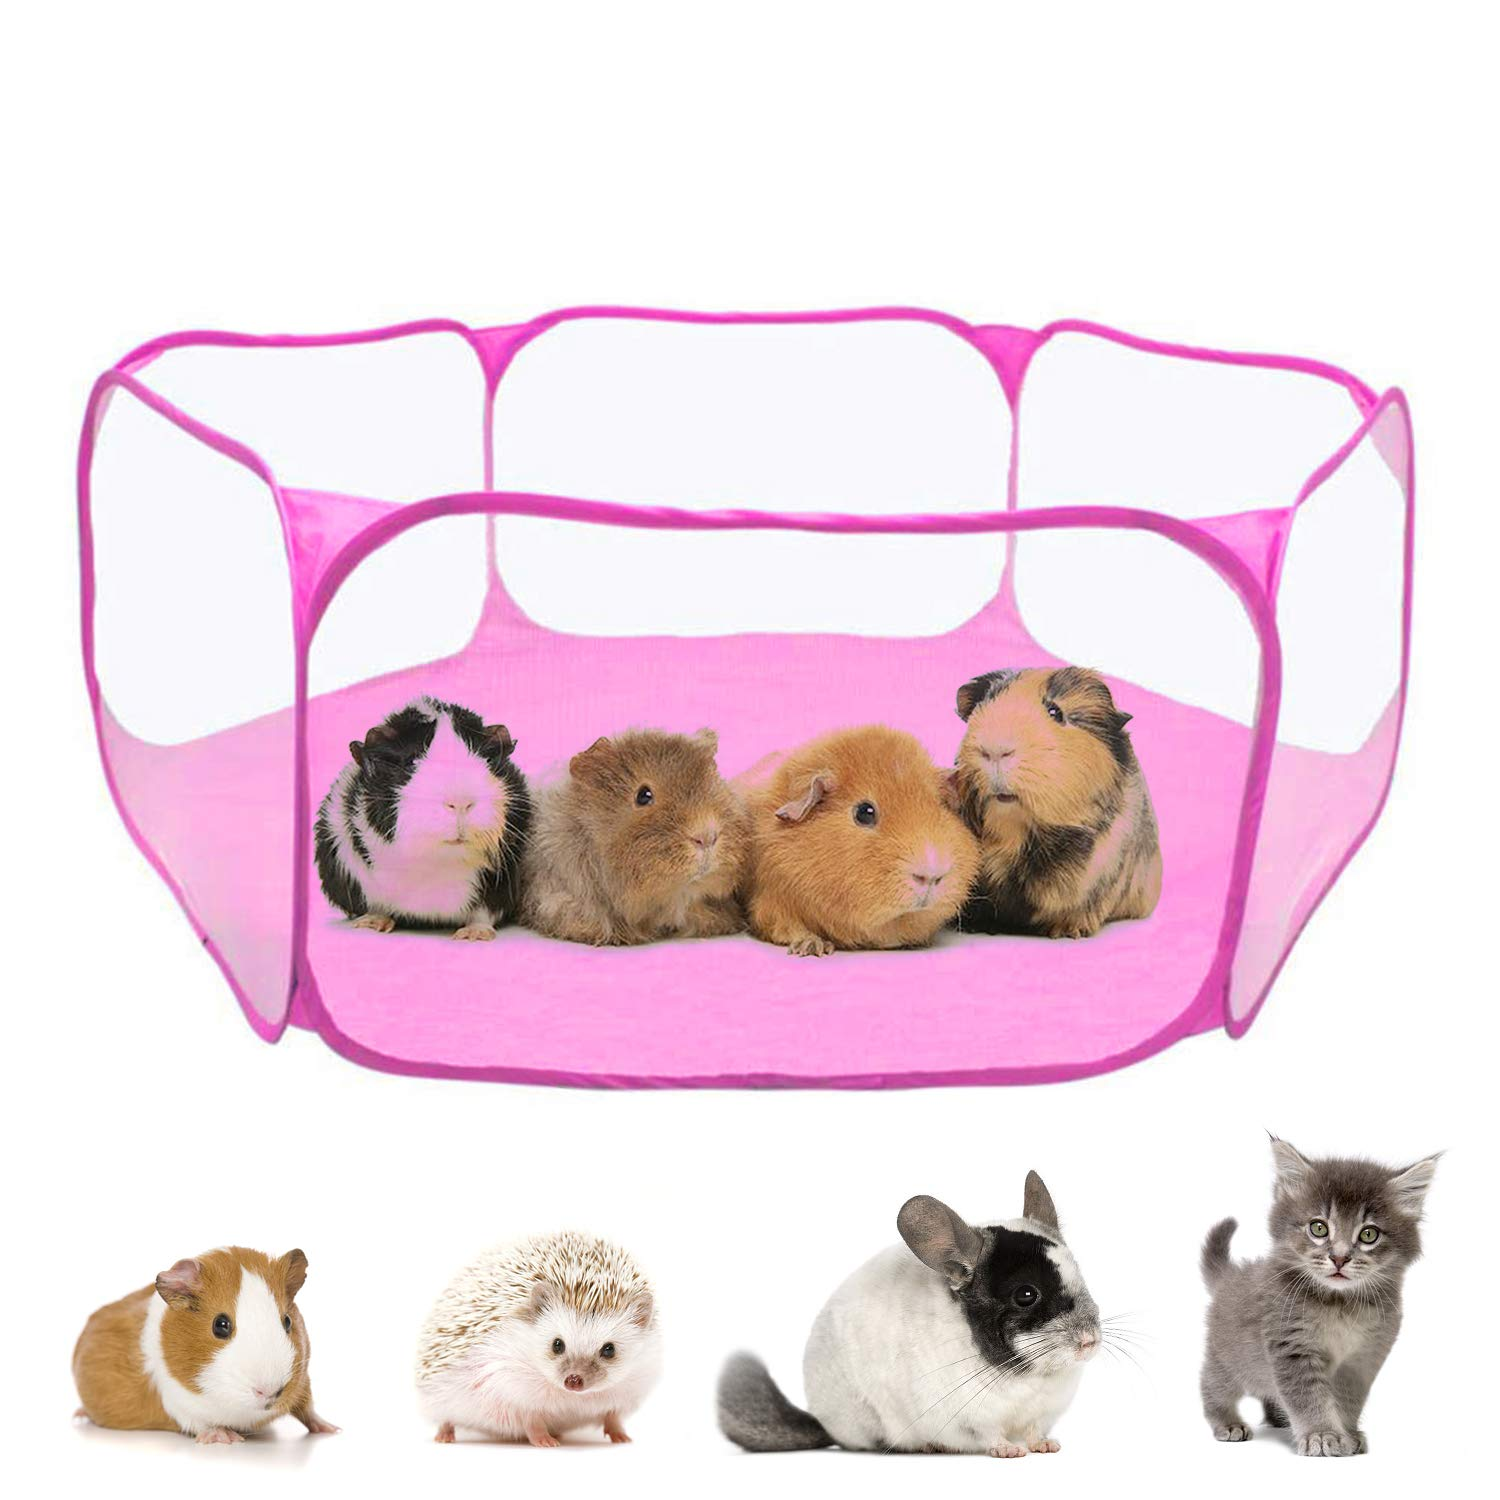 RYPET Guinea Pig Playpen - Breathable & Transparent Pet Playpen Pop Open Outdoor/Indoor Exercise Fence, Portable Yard Fence for Guinea Pig, Rabbits, Hamster, Chinchillas and Hedgehogs